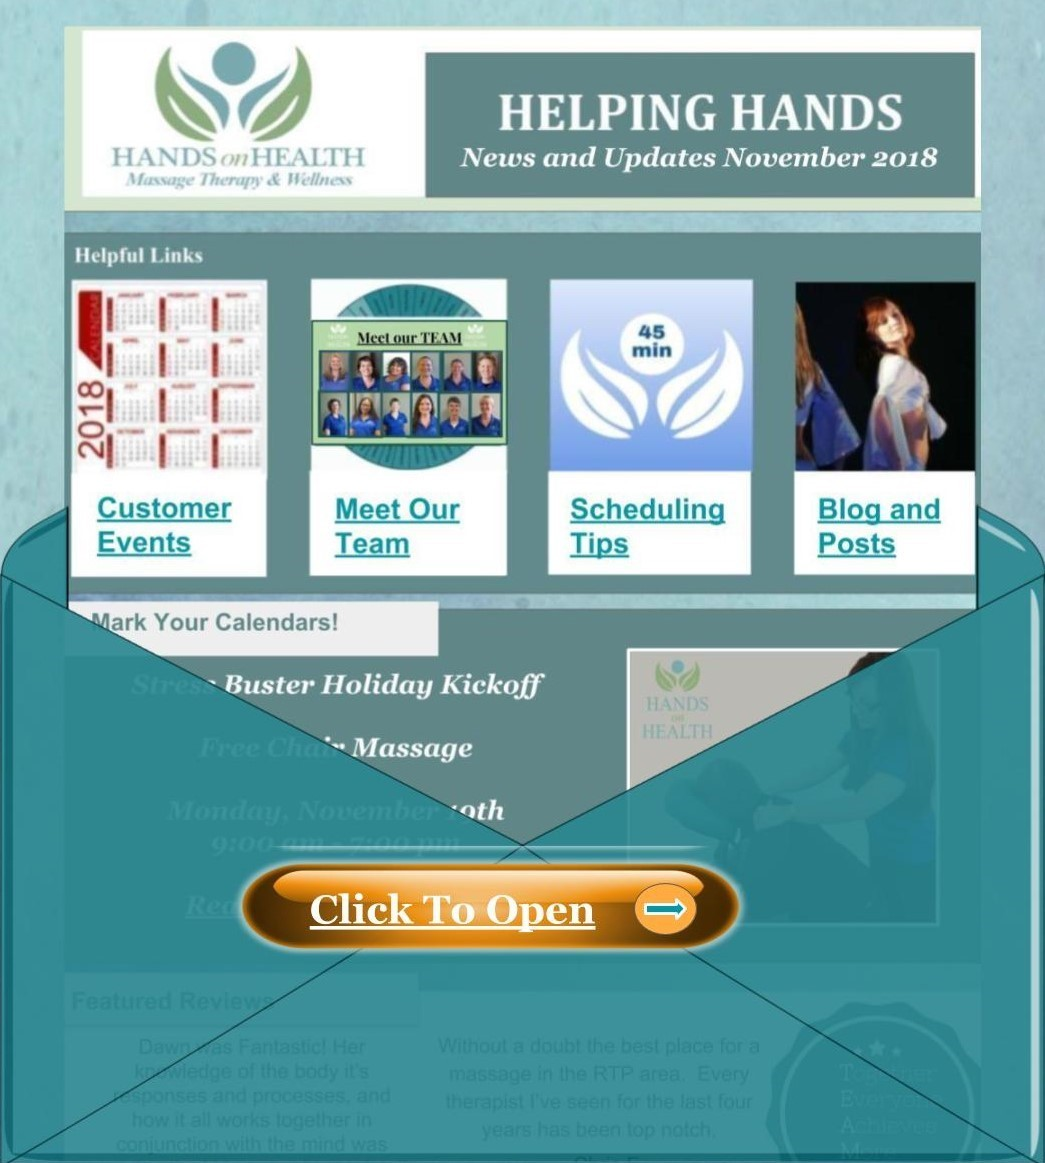 Helping Hands Newsletter November 2018